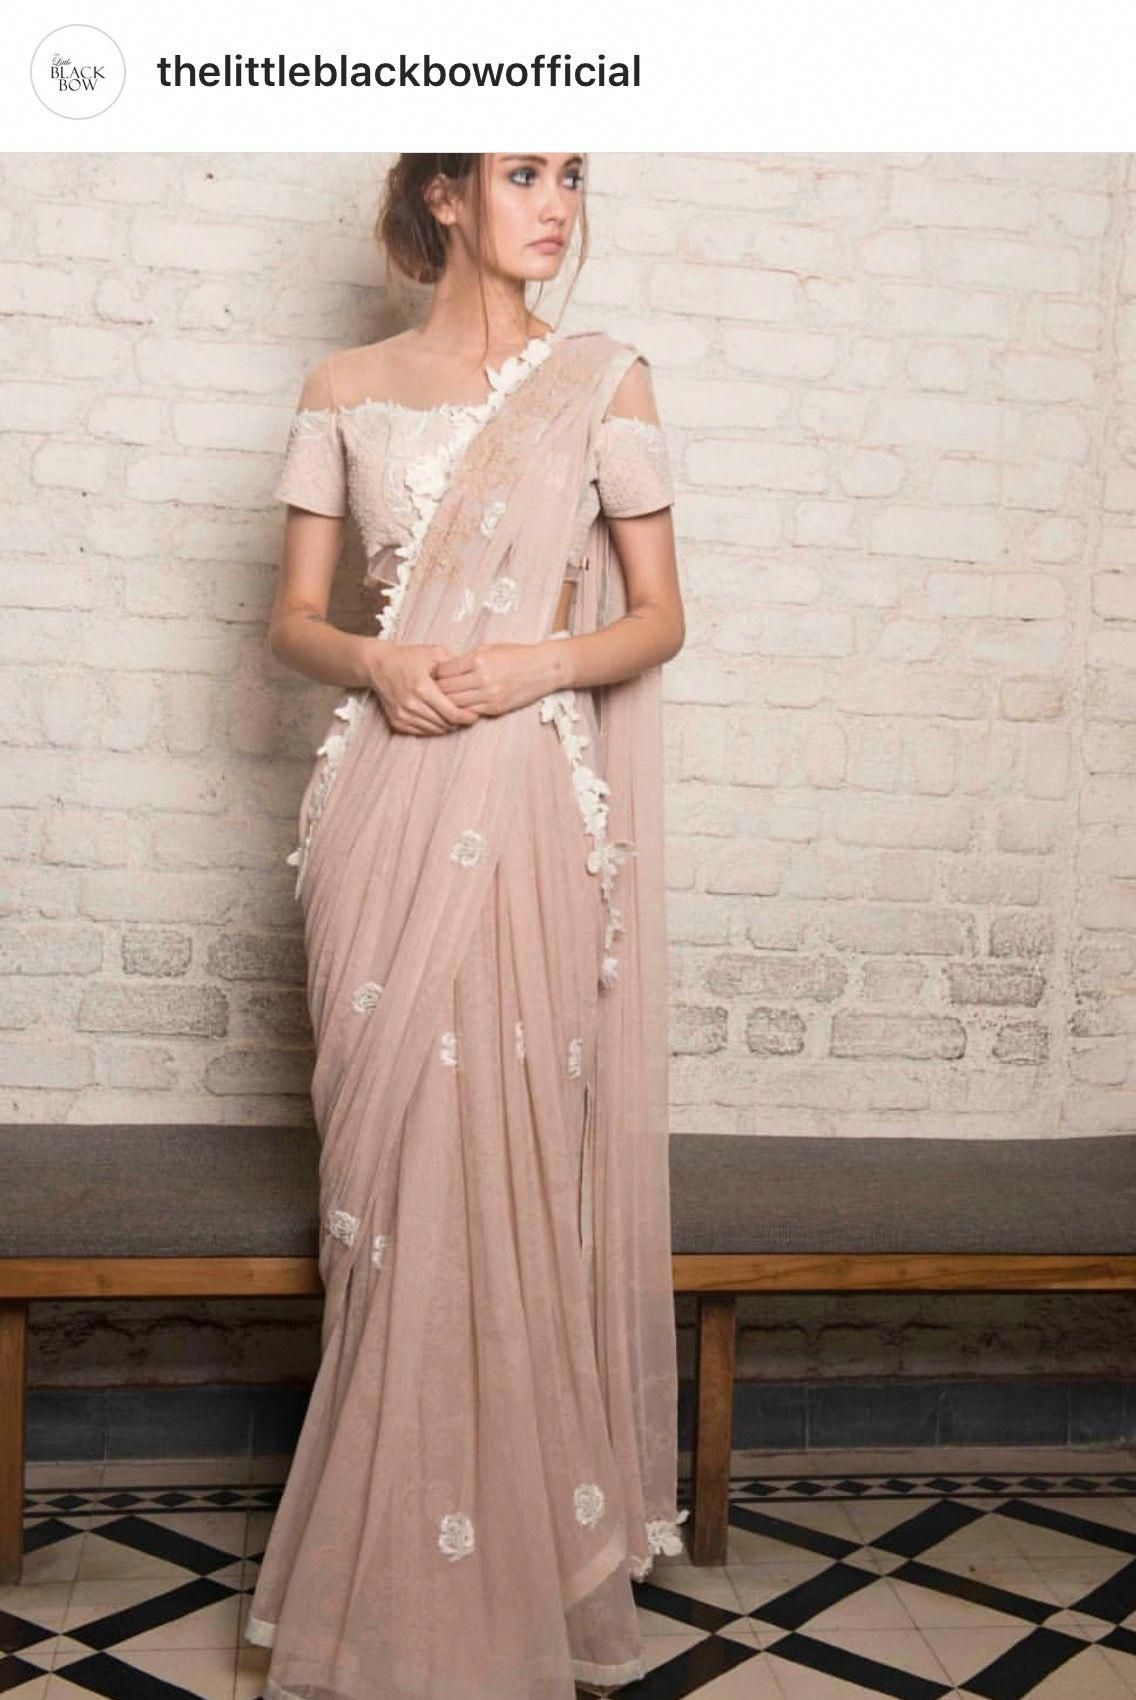 Be a showstopper at cocktail party or a wedding reception. Up your glam quotient the desi way with sexy saree ideas. Follow @Fashionnaire #cocktail #saree #weddingreception #wedding #sexysaree #cocktailpartydresses #saridress